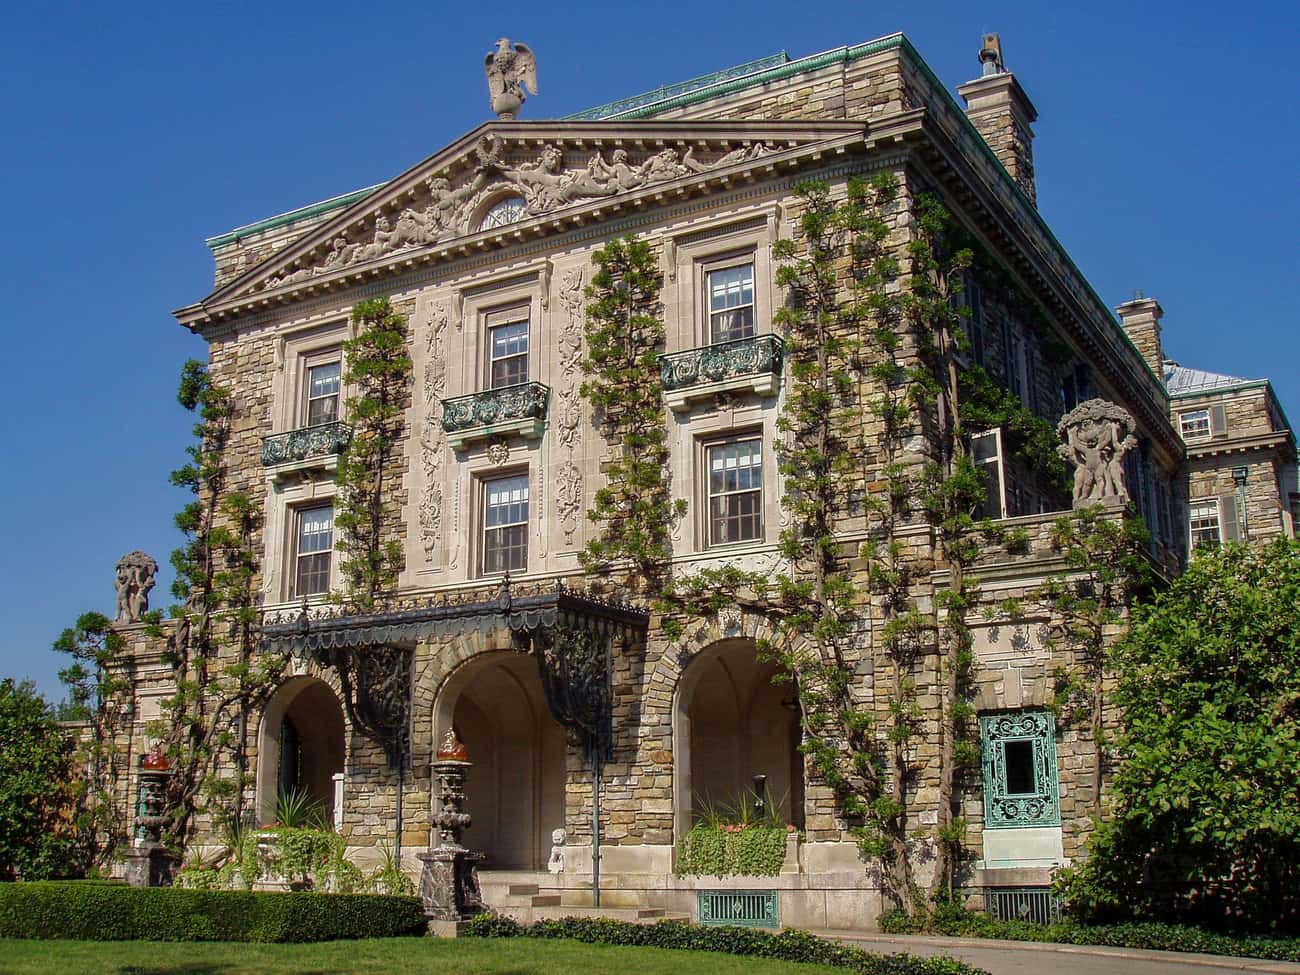 Kykuit Mansion Has Six Swimmin is listed (or ranked) 4 on the list The Most Unbelievably Excessive Homes In US History